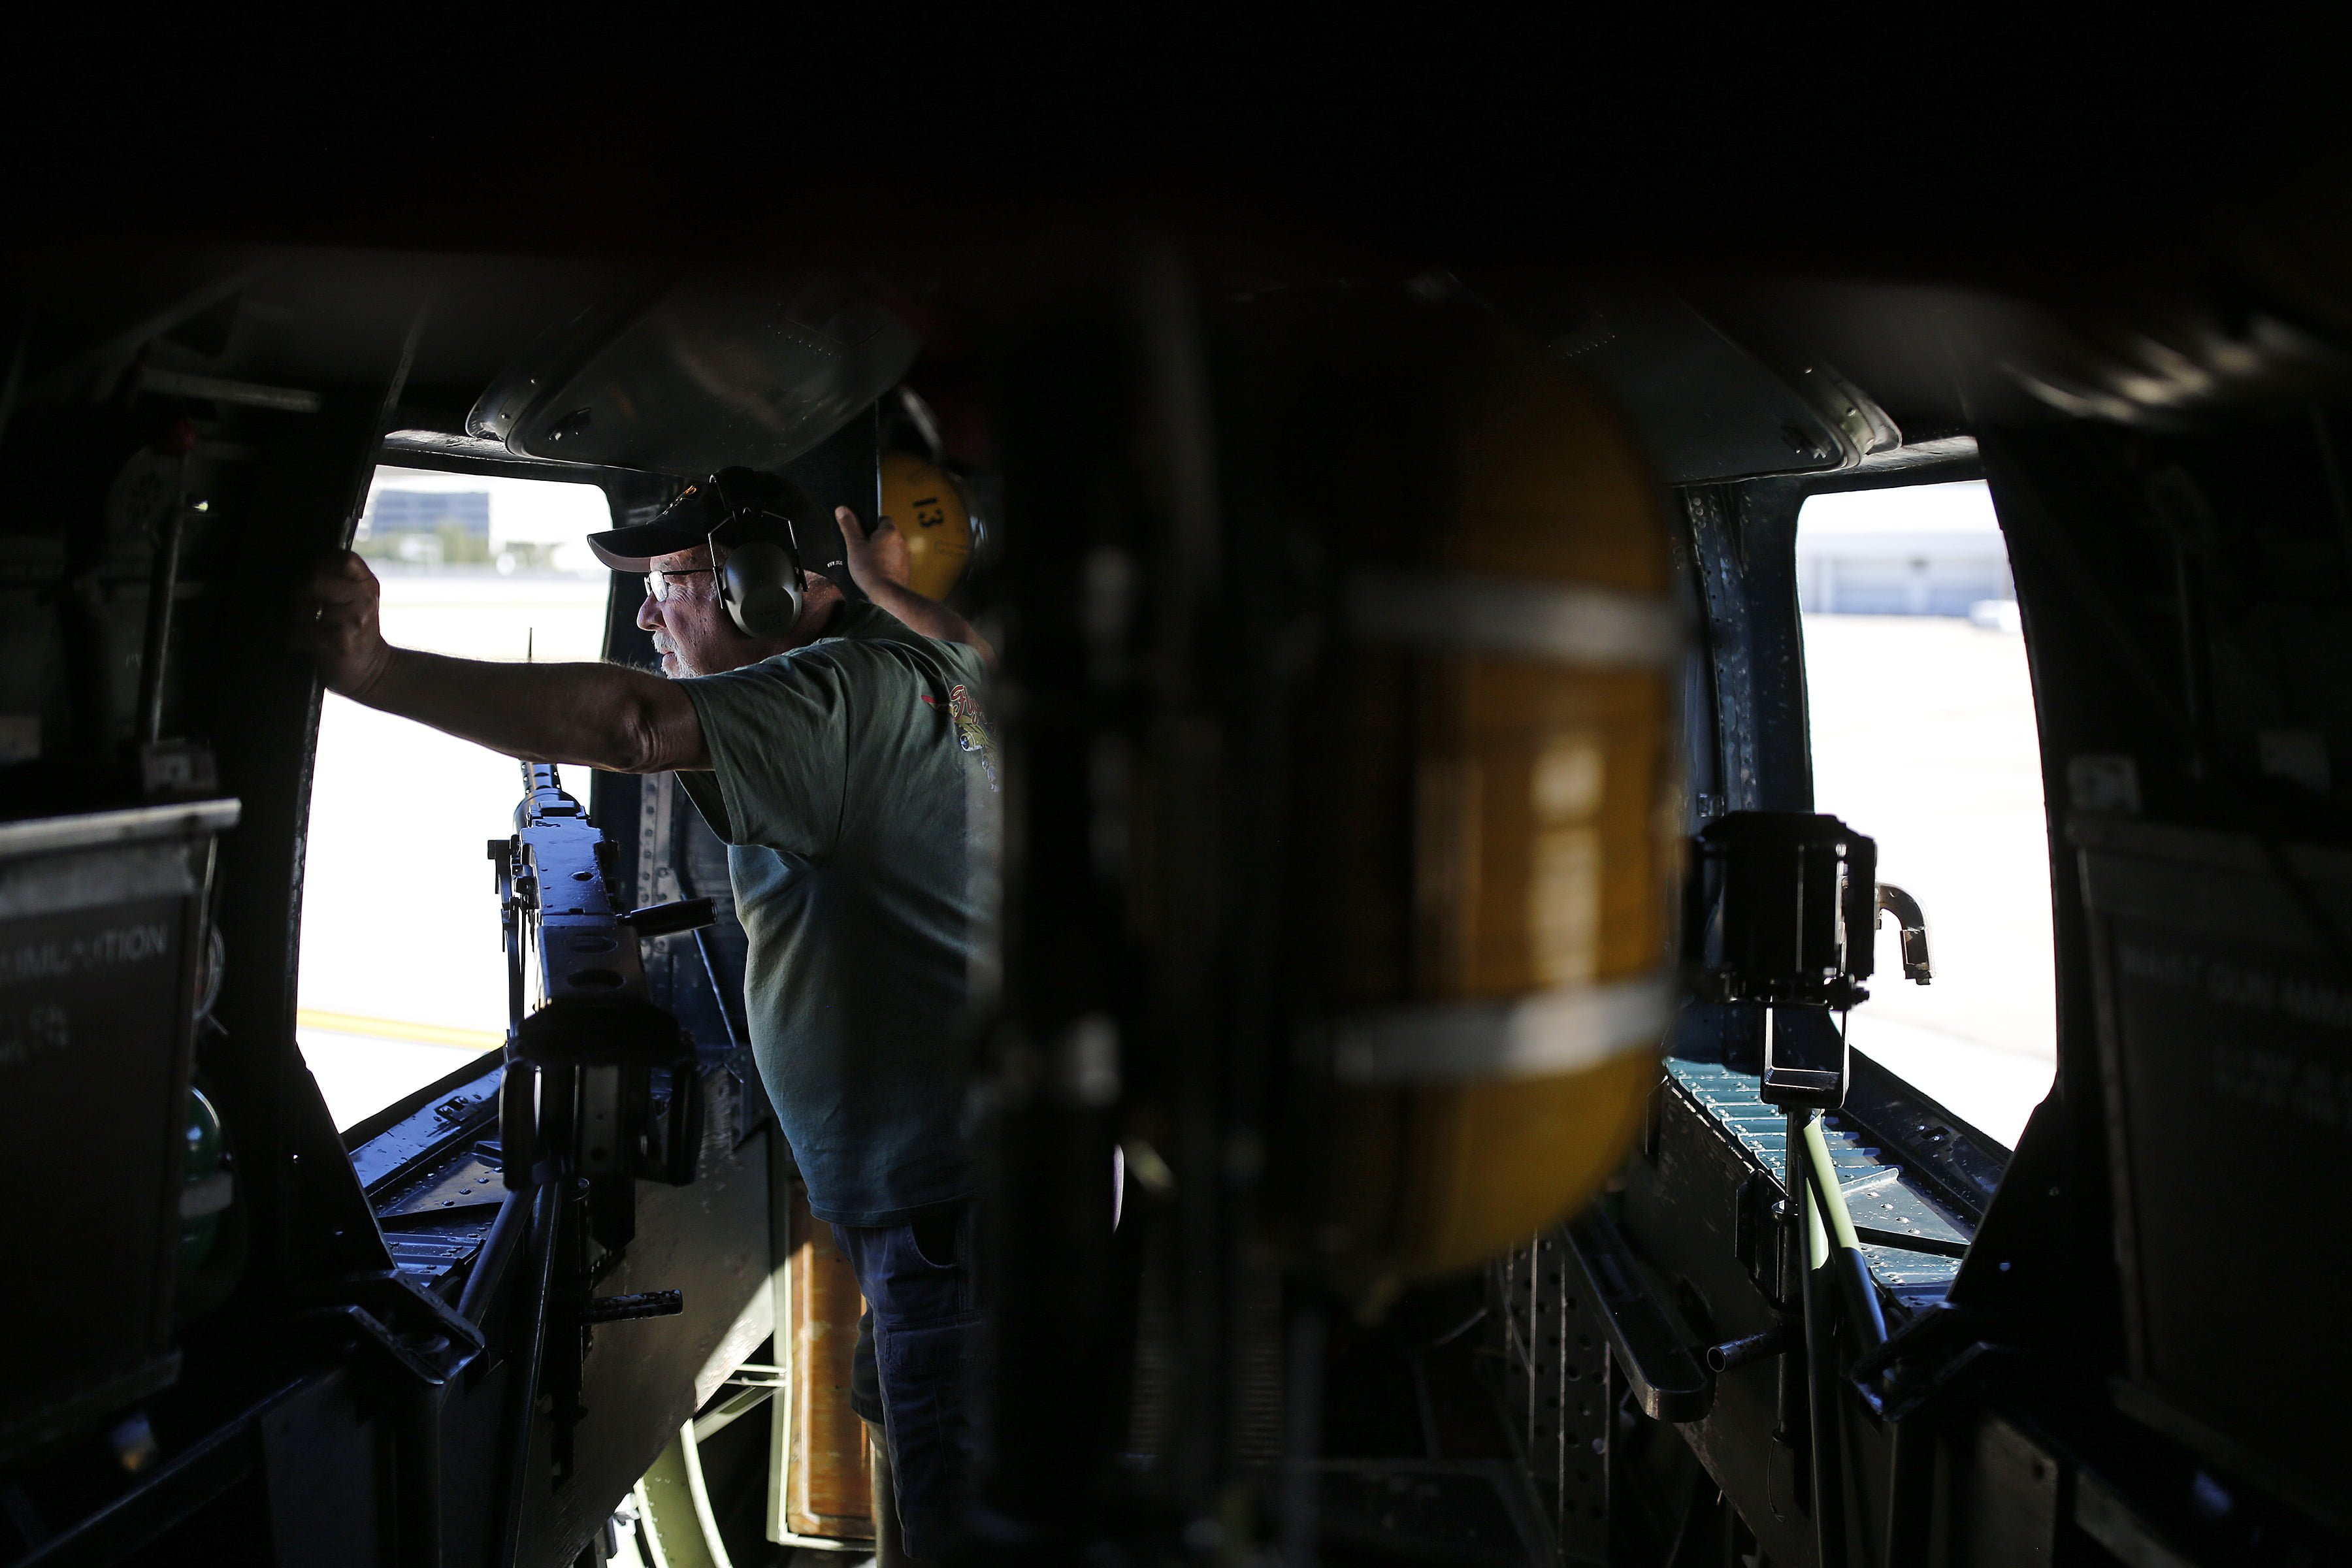 Flight crew volunteer Mike Macon, of Burlington, NC, looks out the rear of the plane as the world's only flying B-24J Liberator taxis for takeoff at Raleigh-Durham International Airport during the Wings of Freedom Tour, October 19, 2017. Hosted by the Collings Foundation, Wings of Freedom visits more than 100 cities a year to show off working pieces of American war history as well as to educate people about the veterans of WWII. The tour will be in Burlington, NC until 12 pm on Oct. 25 and then move to Statesville, NC through Oct. 27. (Eamon Queeney / North State Journal)